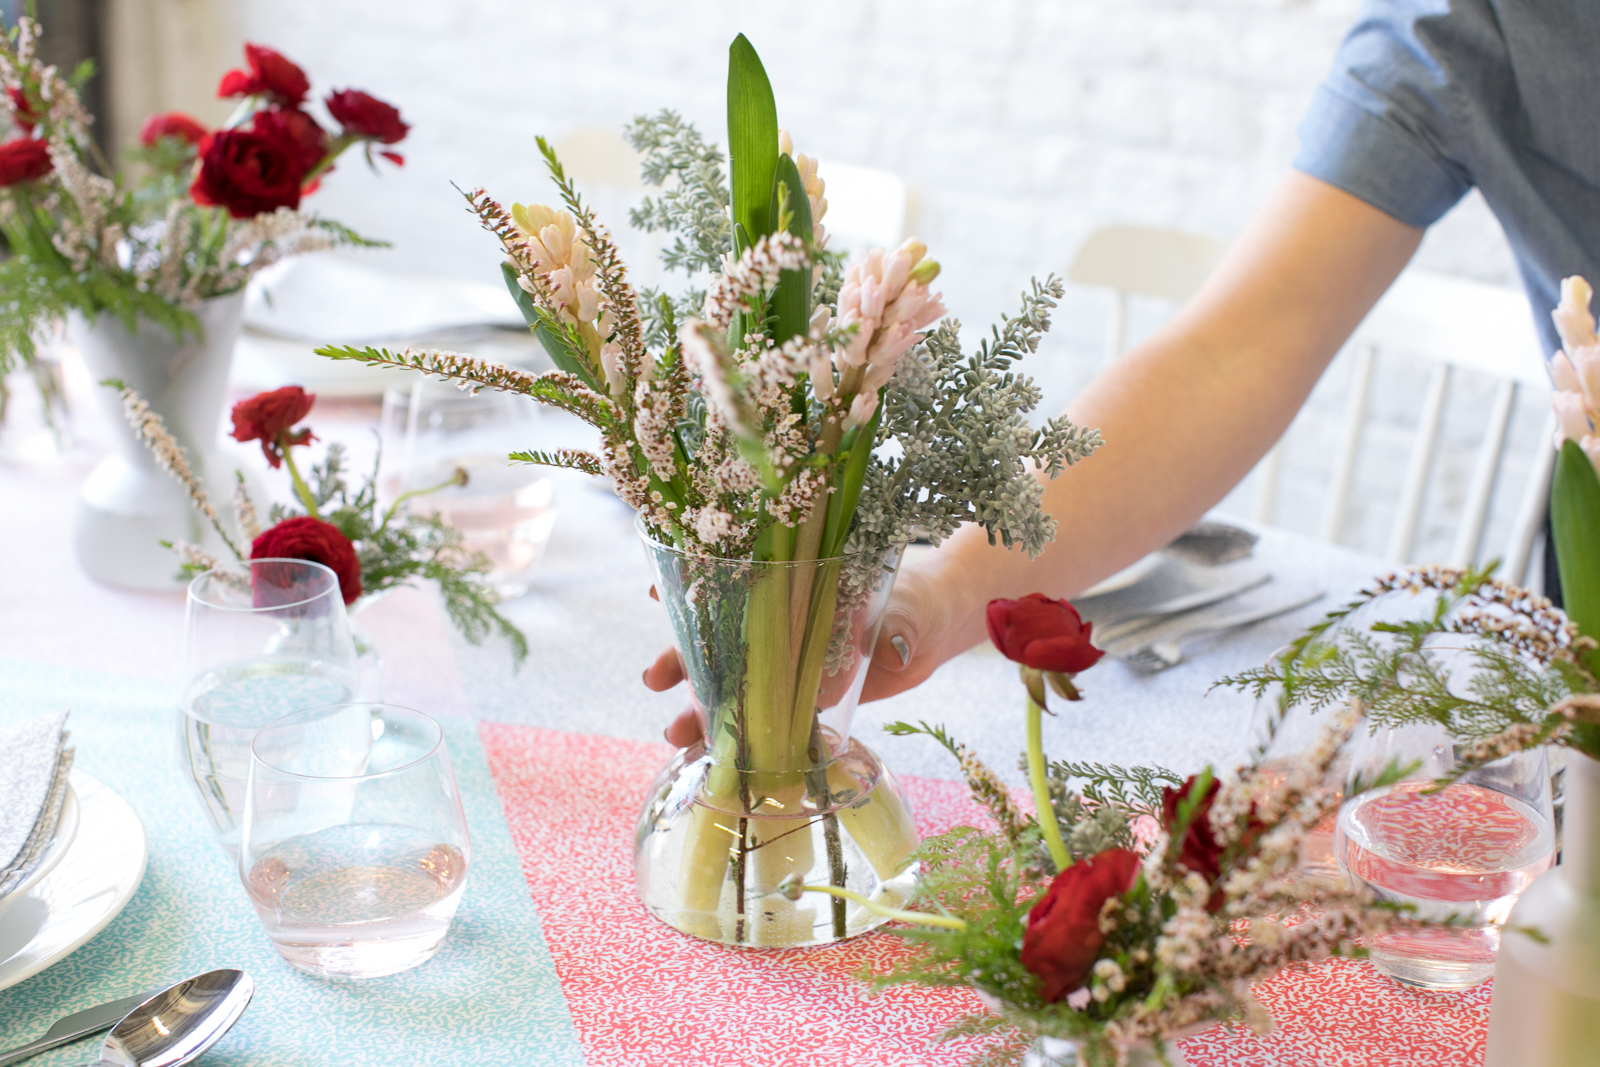 Unison_MothersDayTable_Web-21